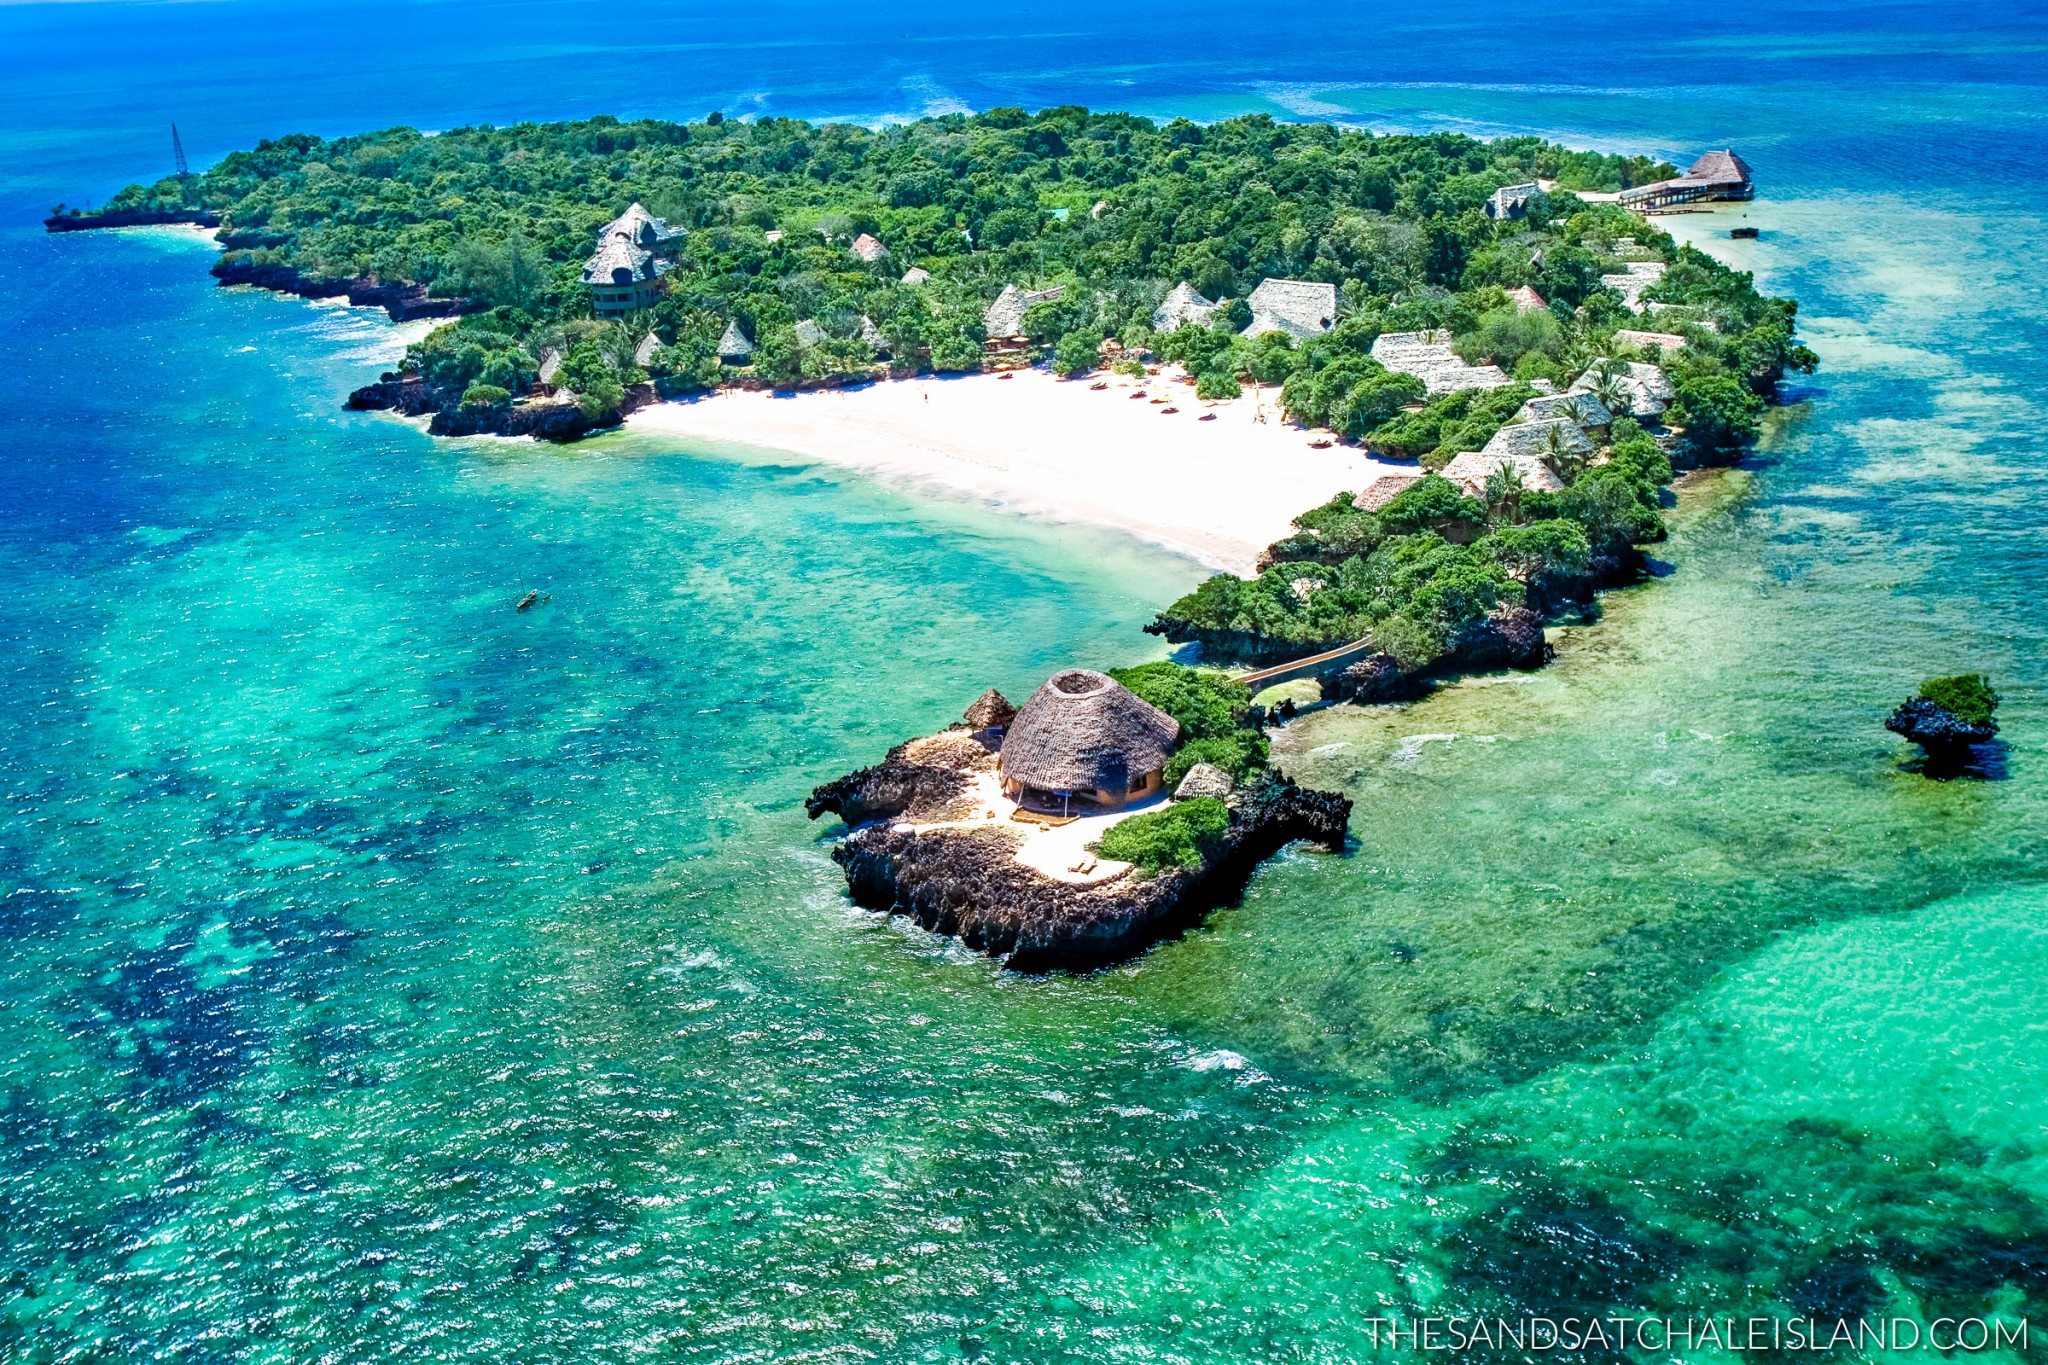 Anblick des Hotels The Sands at Chale Island aus der Luft